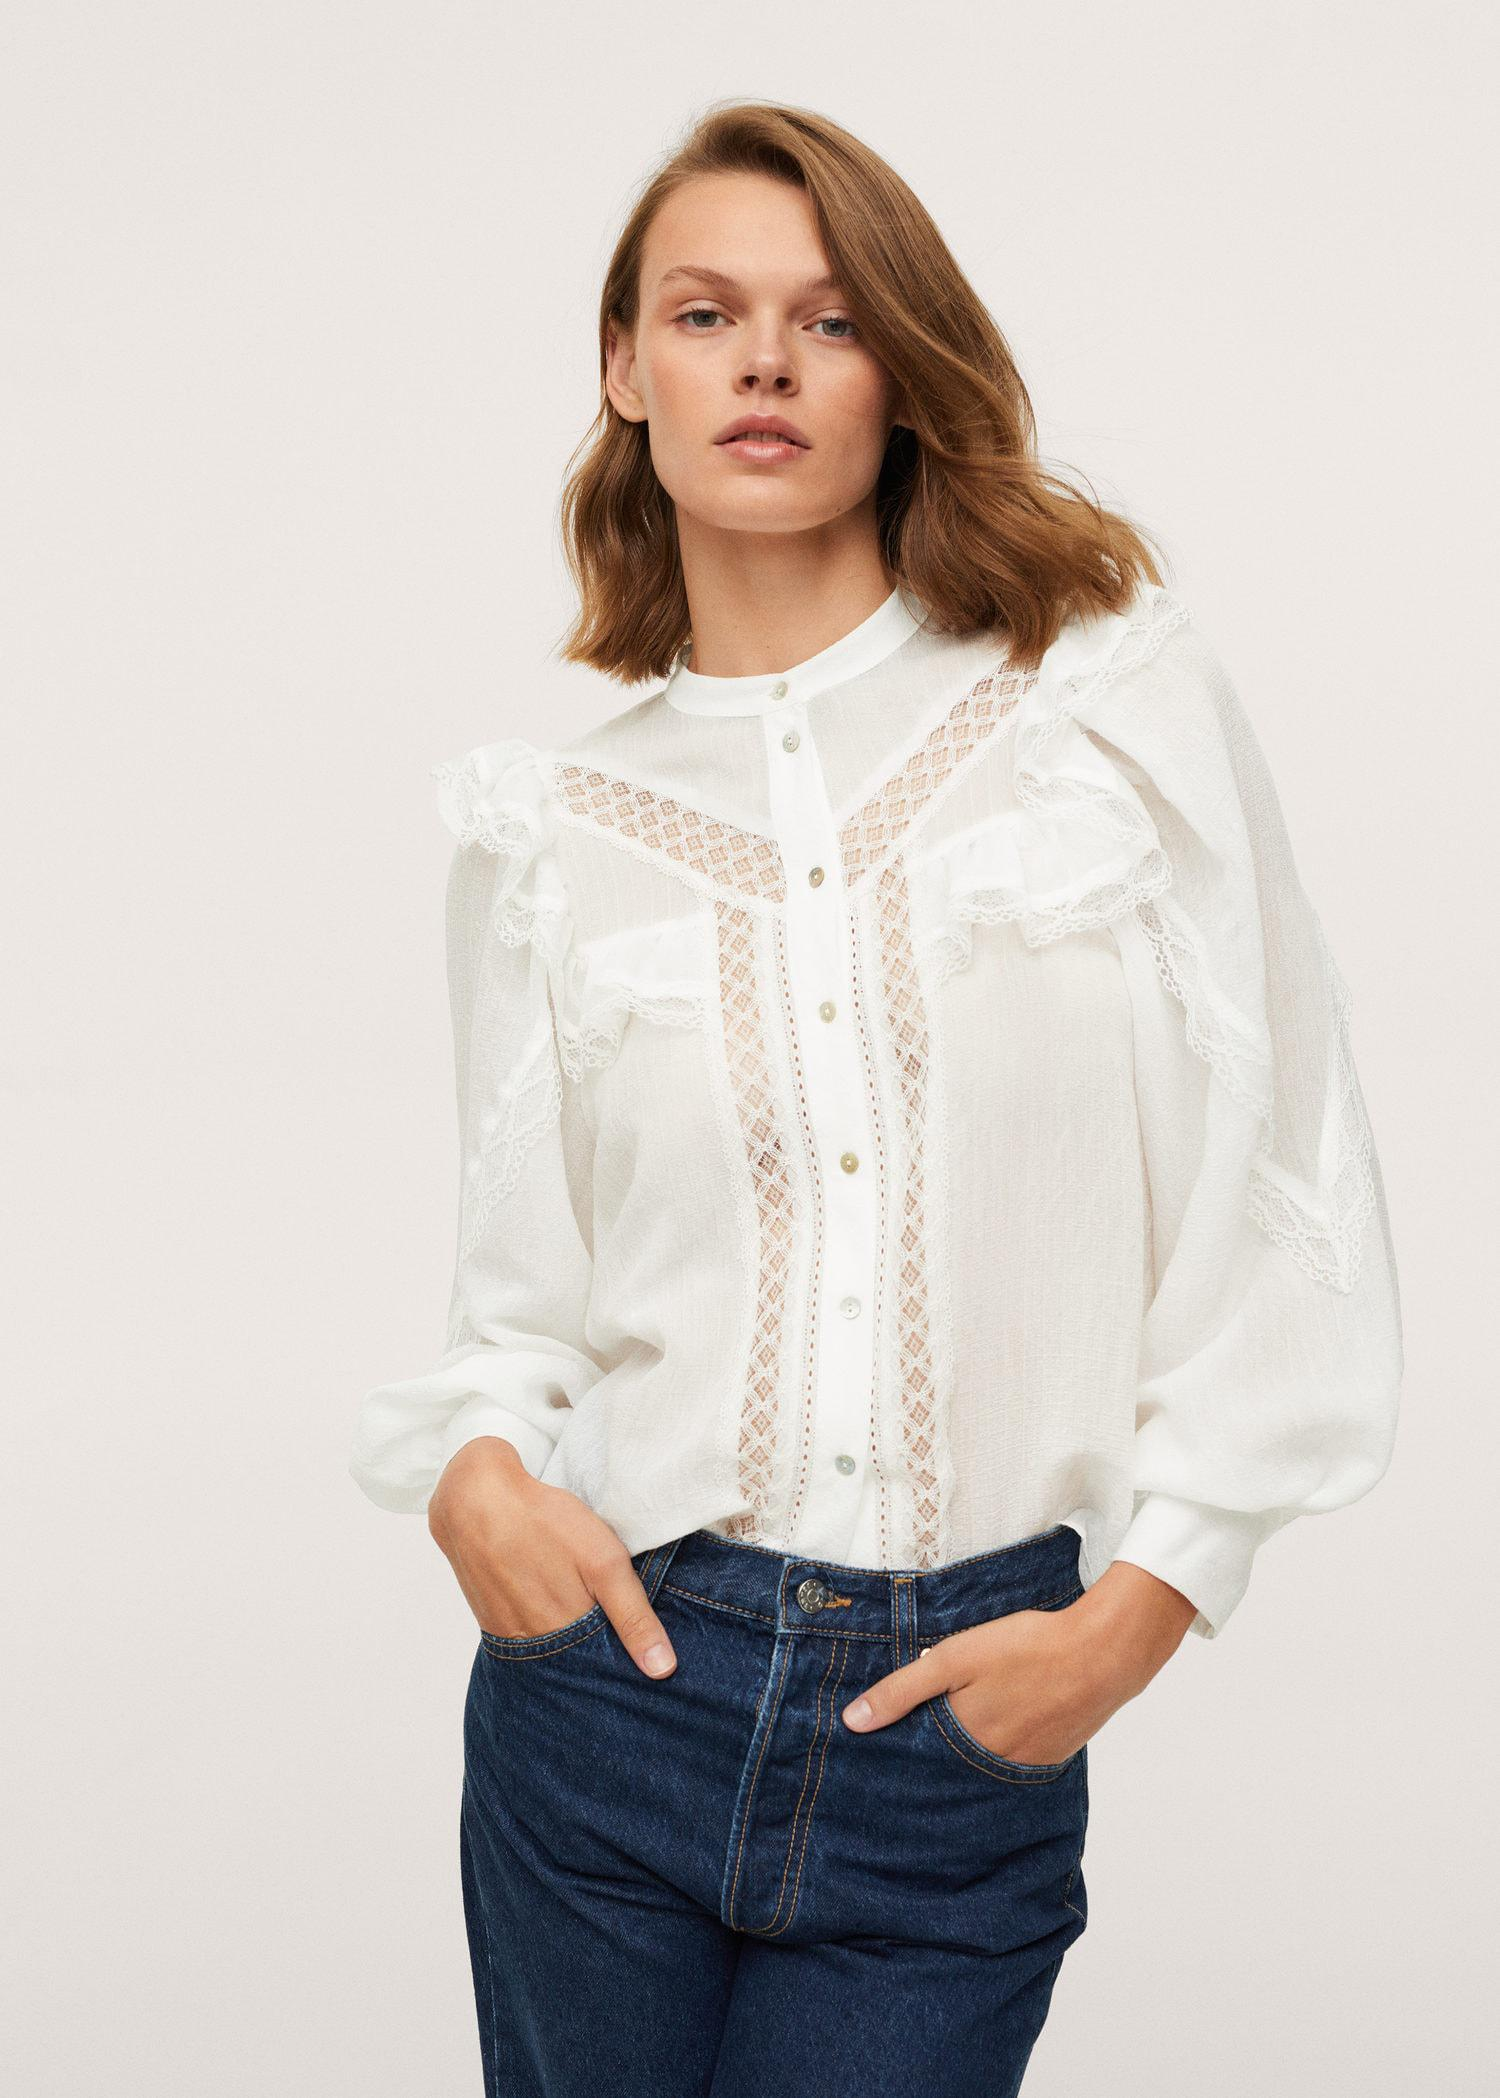 Ruffled embroidered blouse